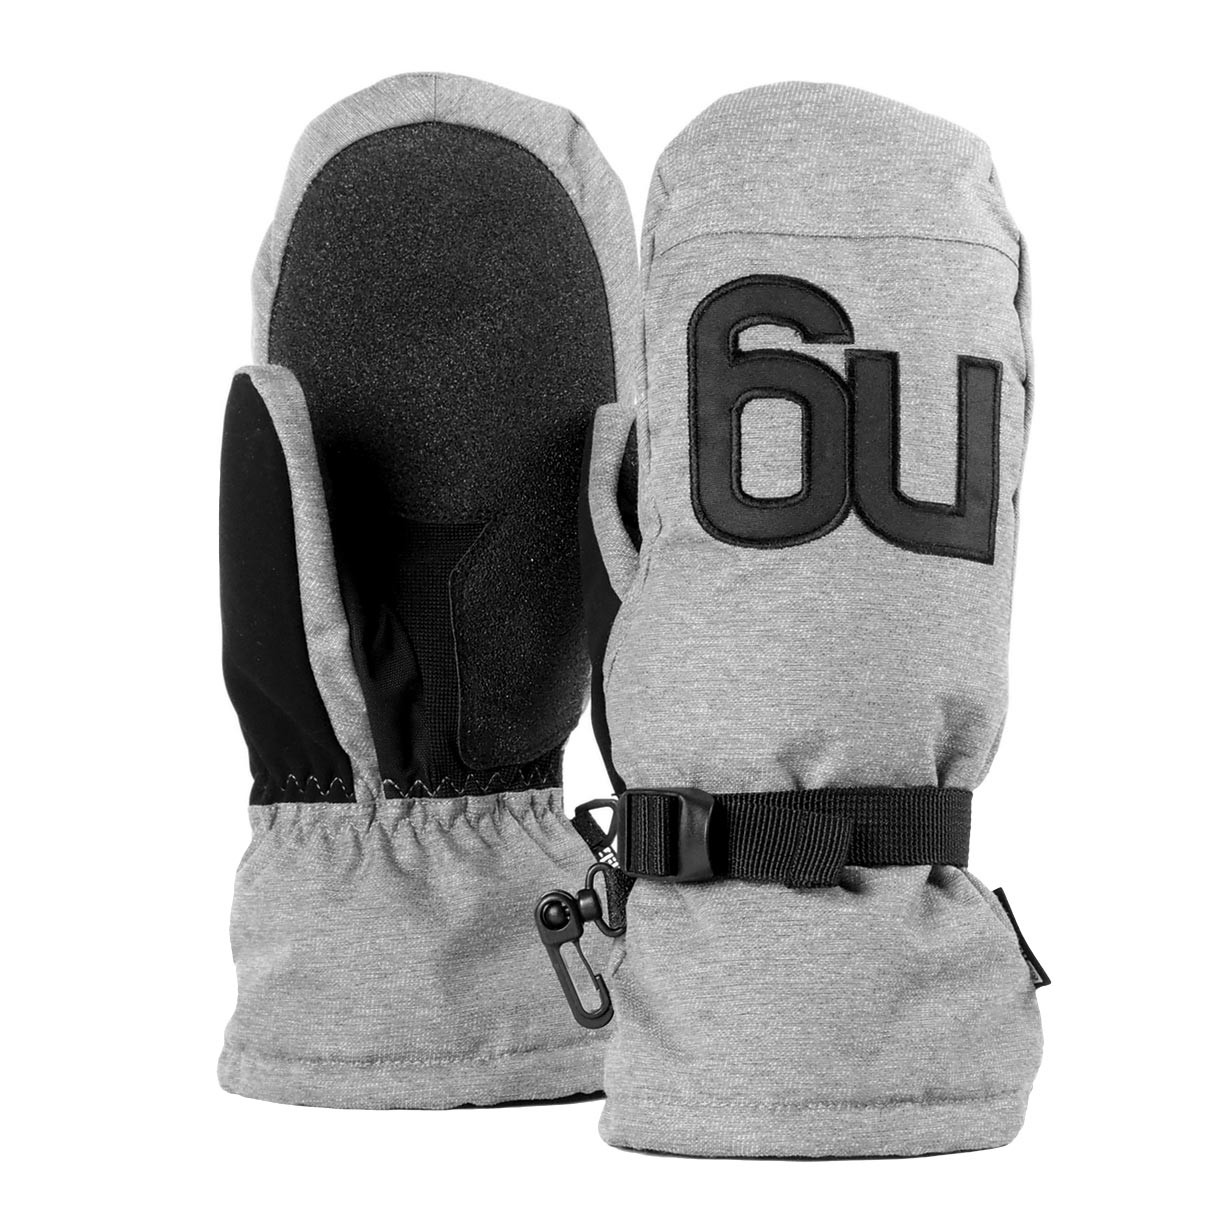 Rukavice Nugget Drive 2 Mittens heather grey